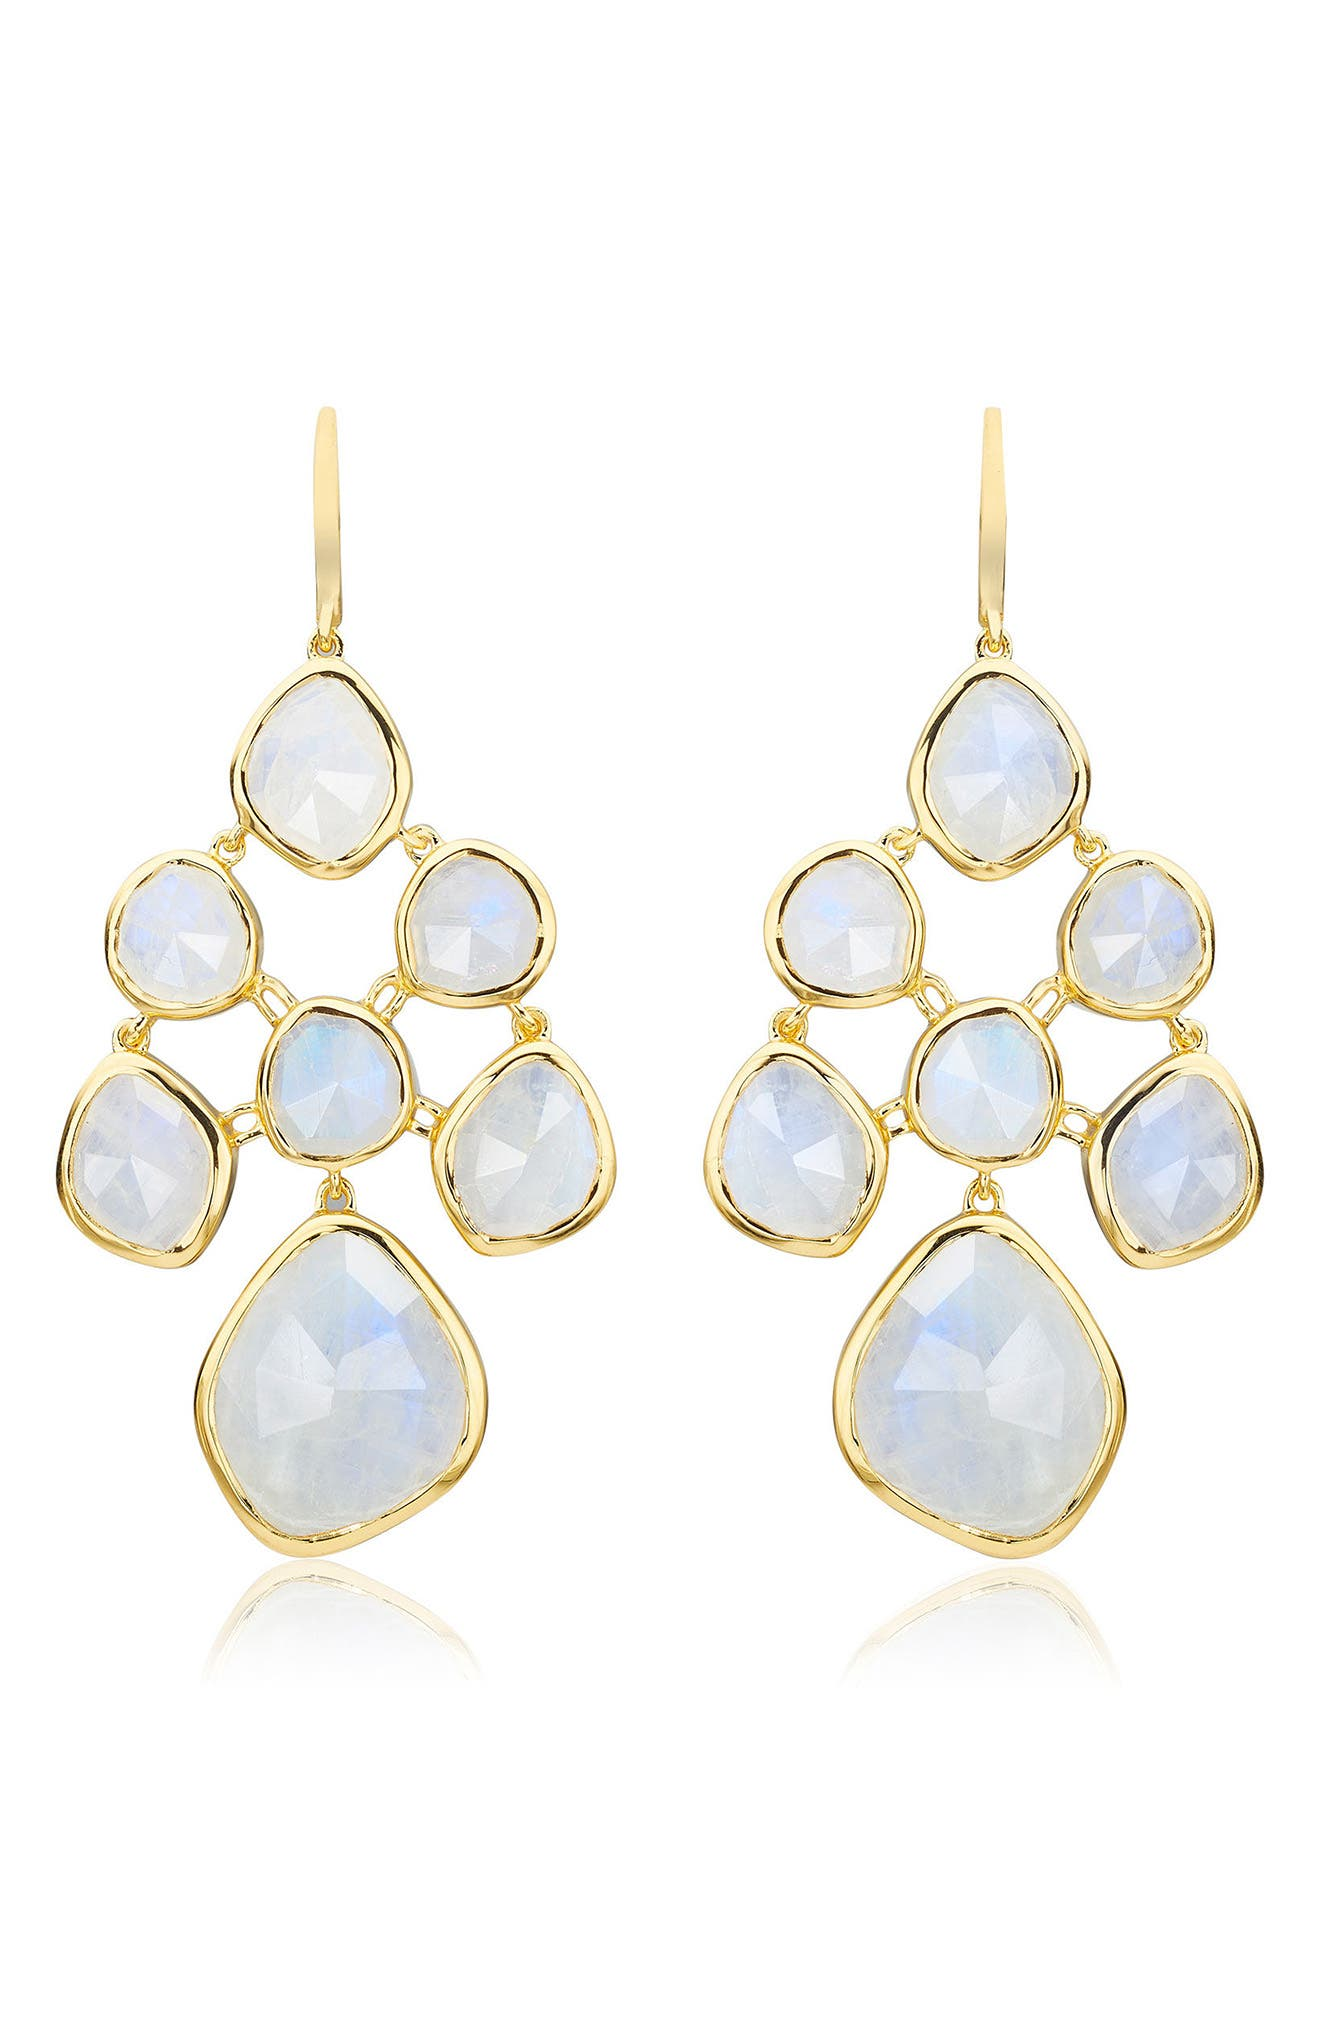 Monica Vinader Siren Chandelier Earrings